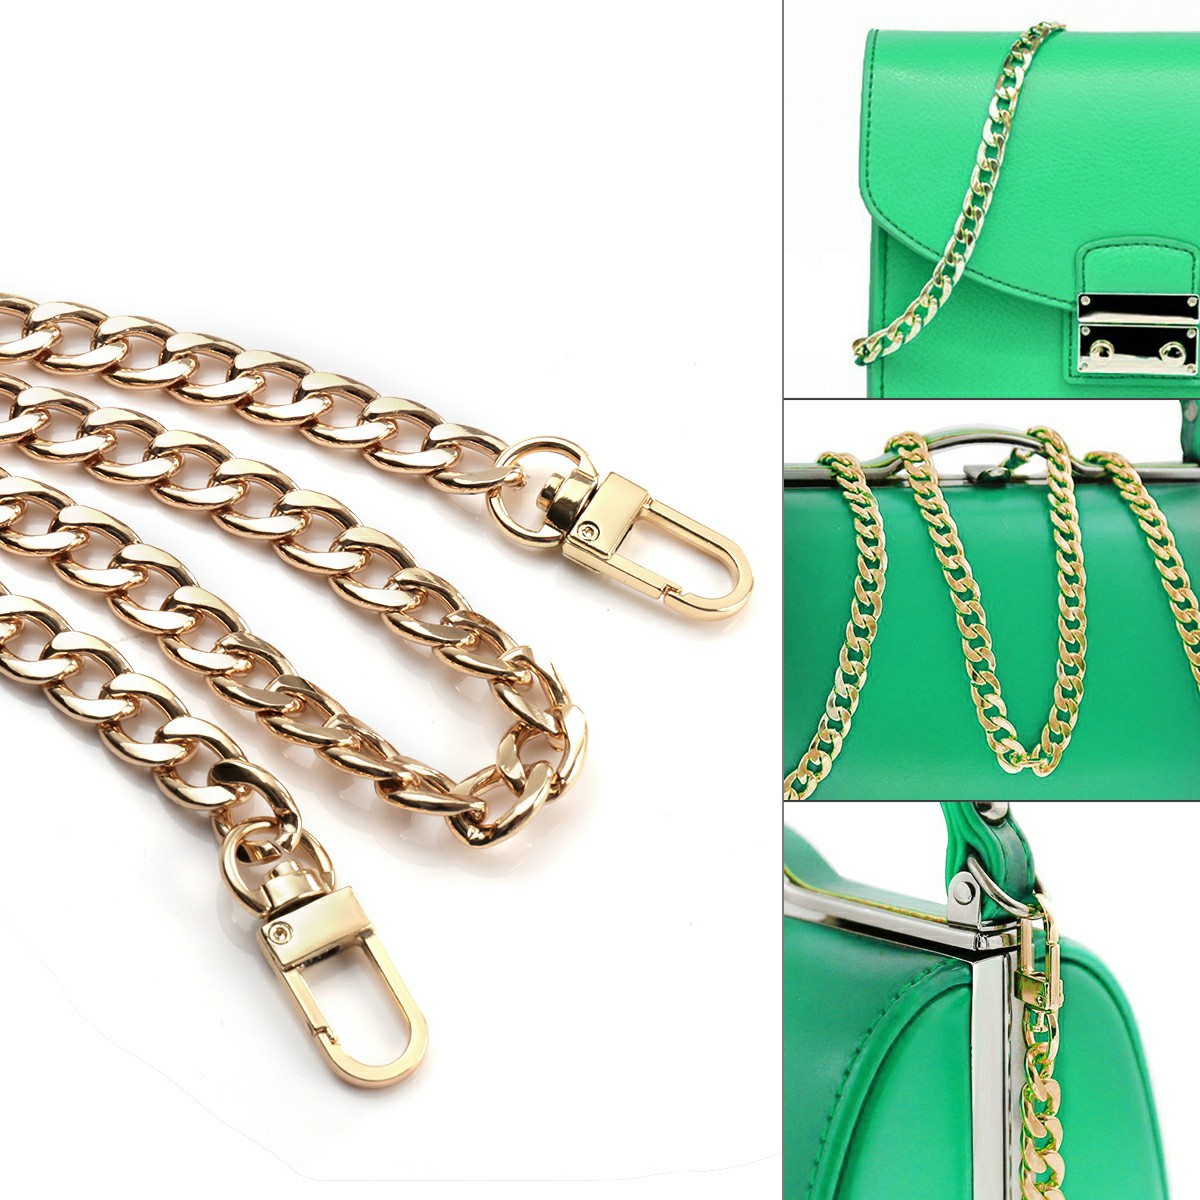 Metal Flat Chain Replacement Strap for Handbag - Gold